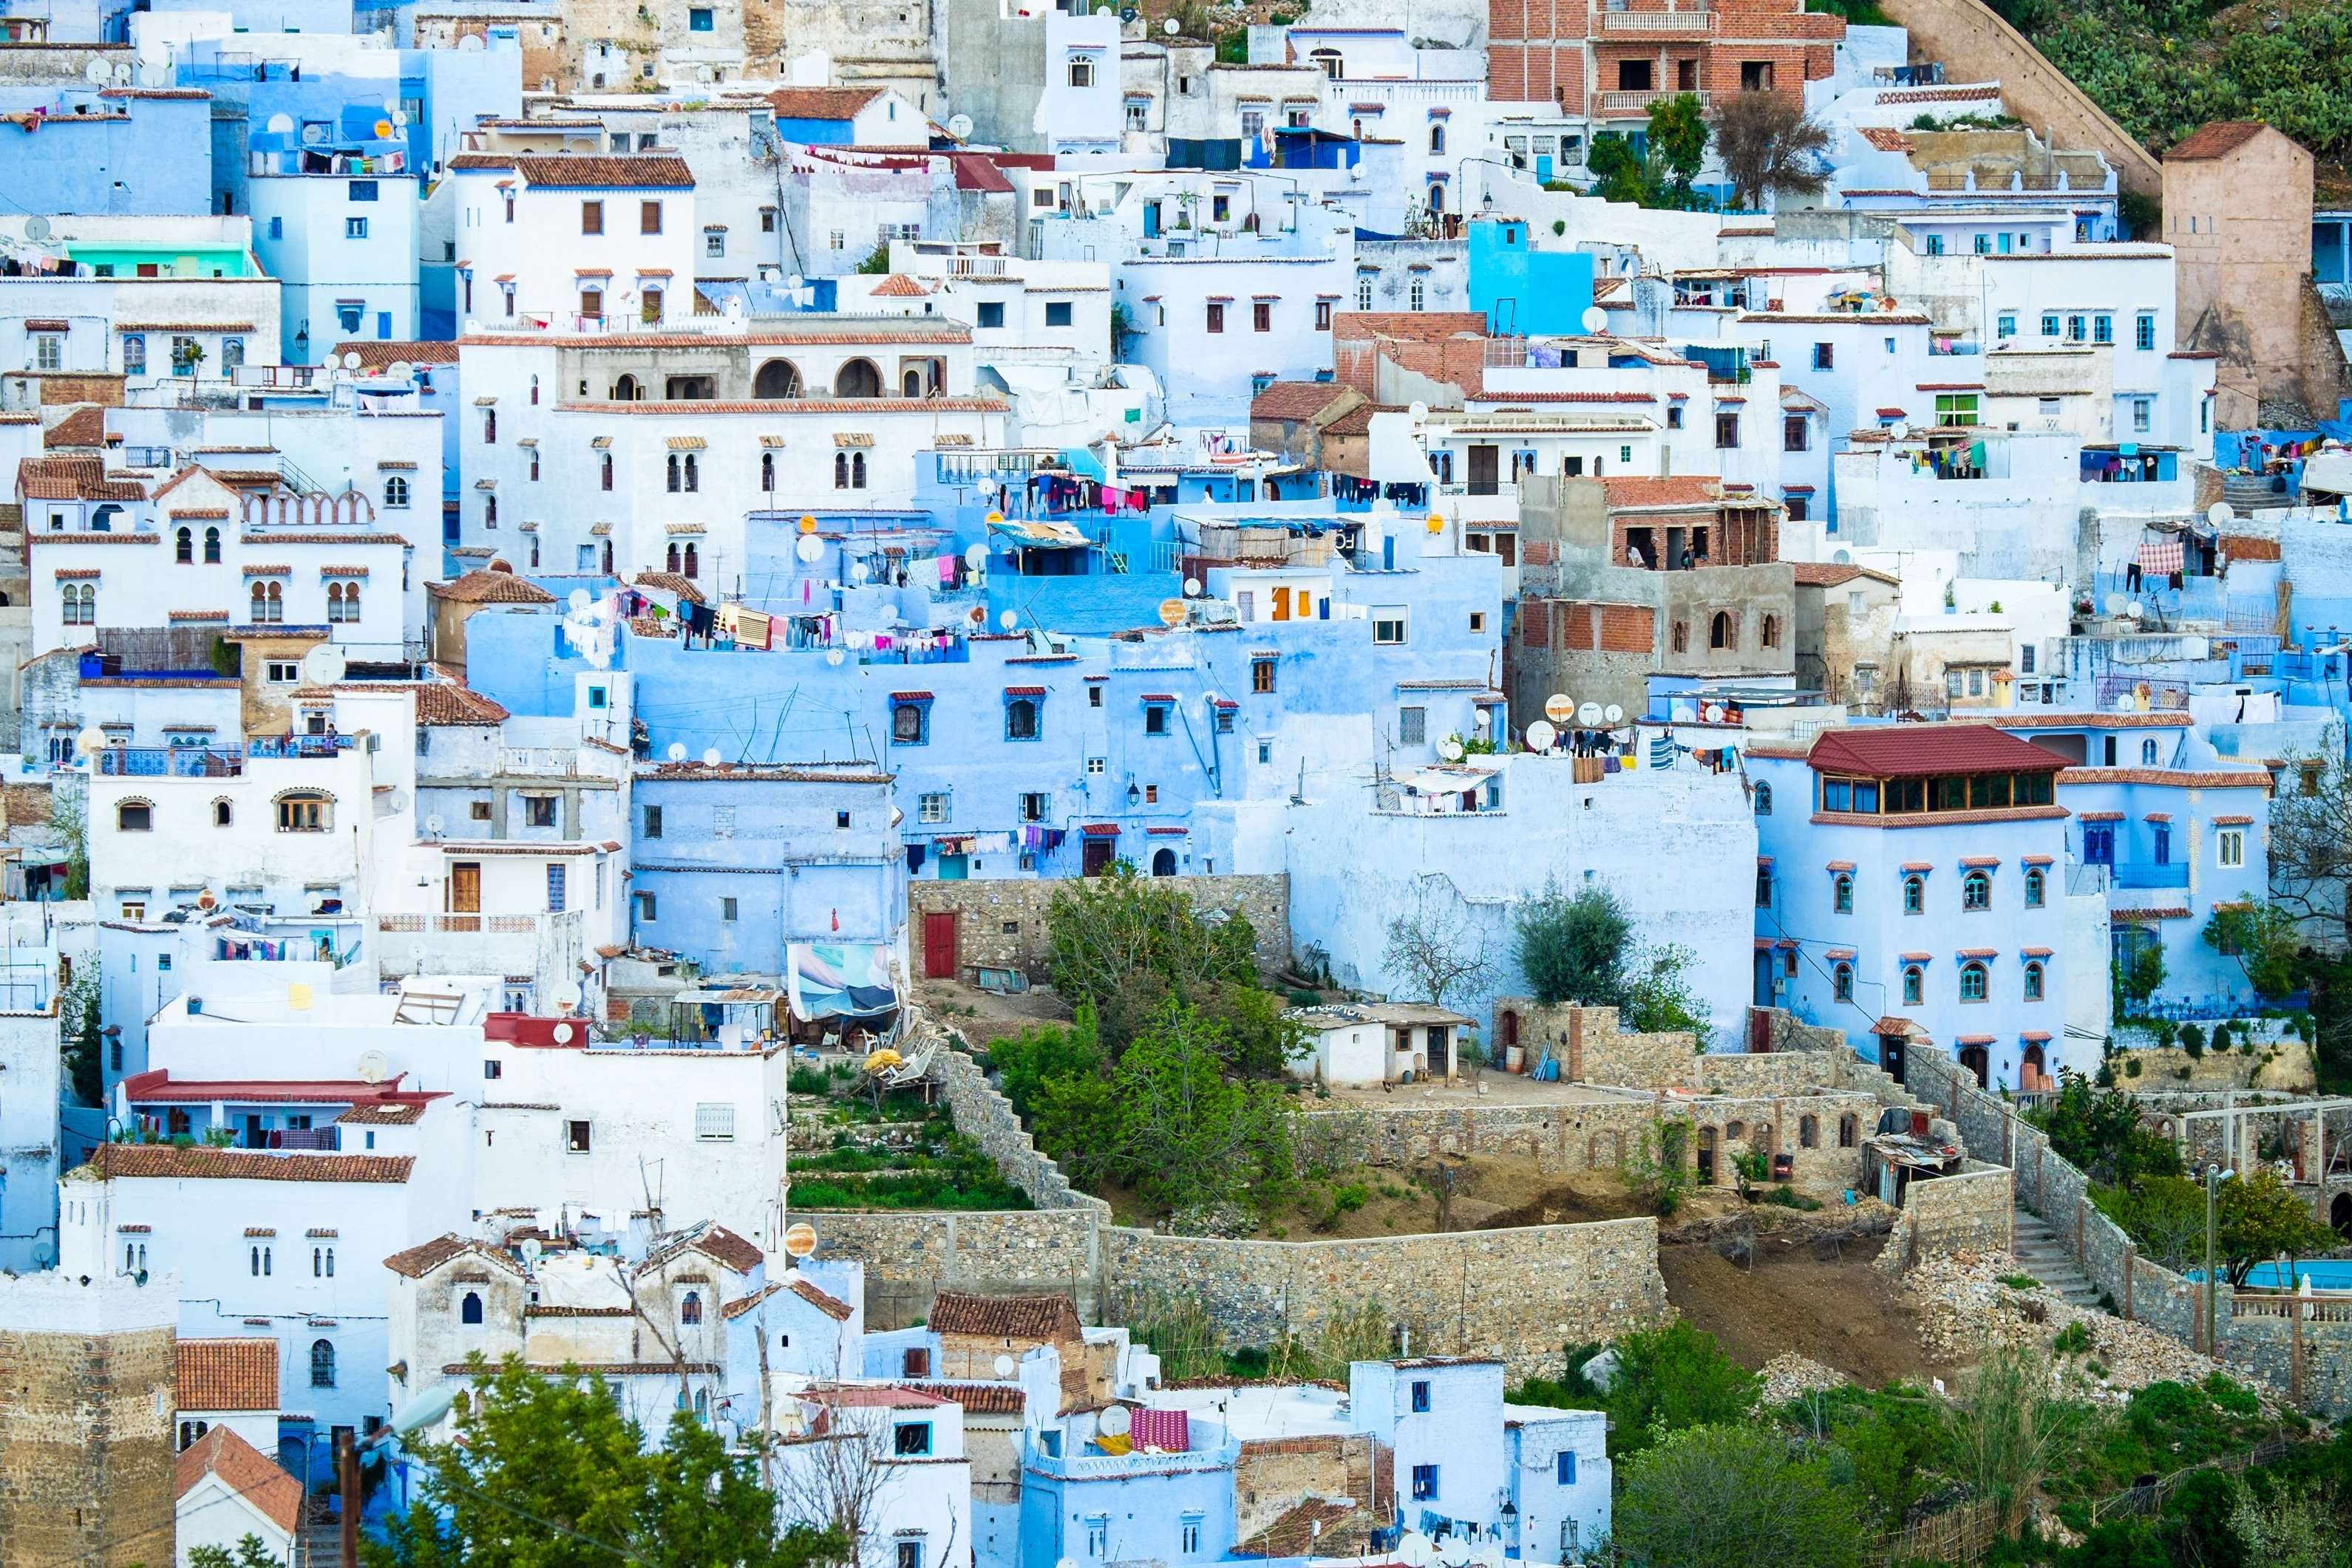 Genevieve Hathaway_Morocco_Chefchaouen_City_1